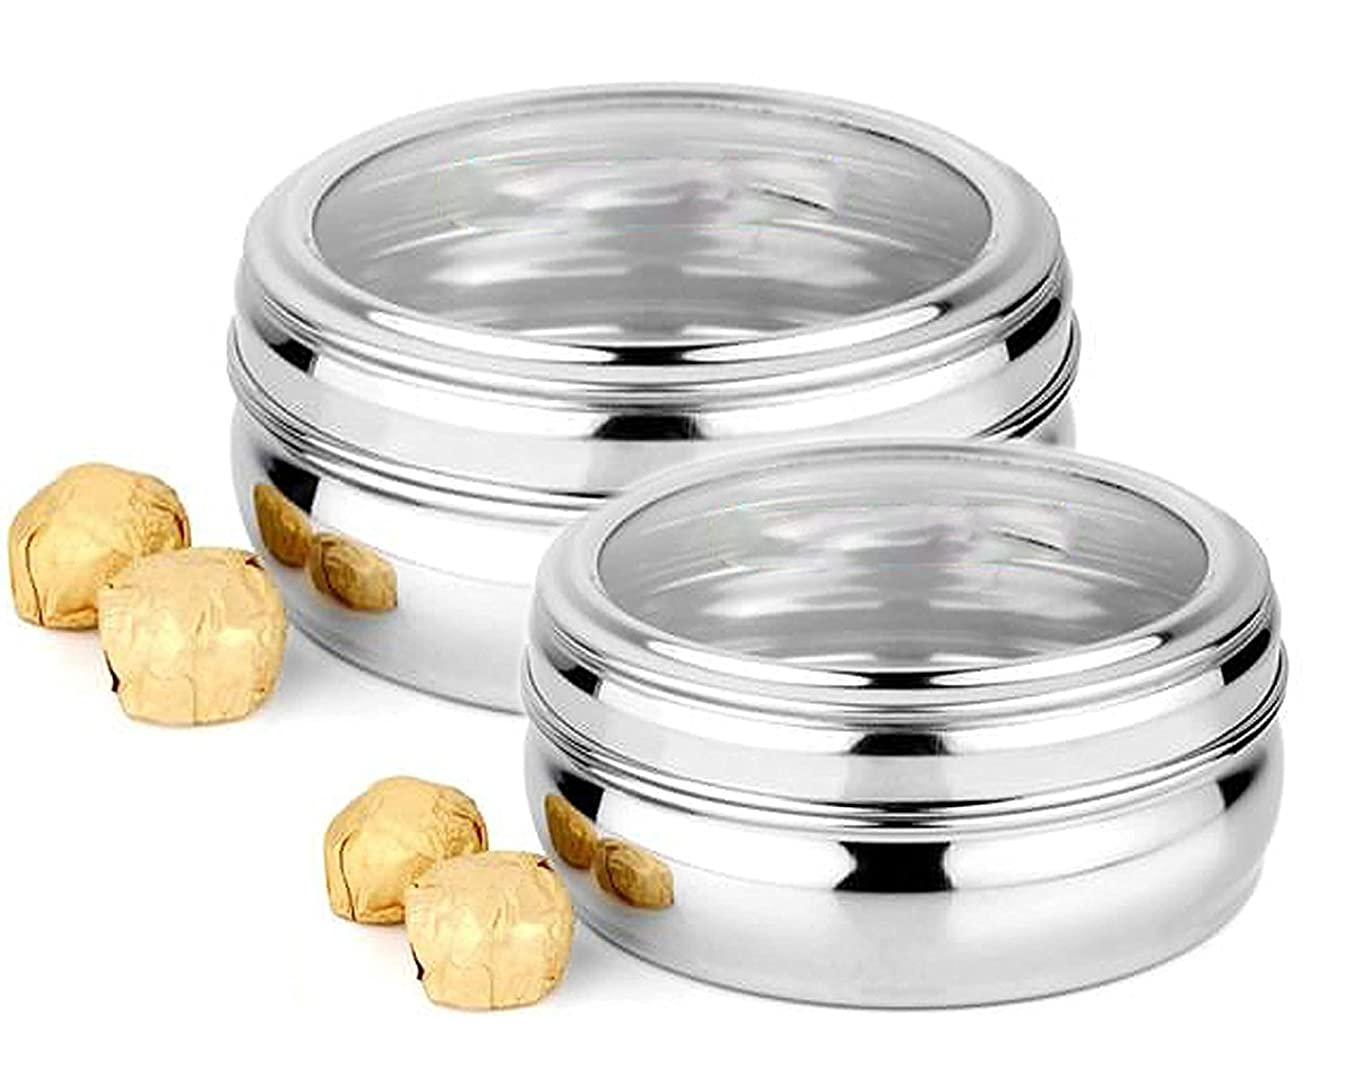 King International 100% Stainless Steel See Thru Storage Containers | Storage Box (Puri Dabba), Set Of 2 Pieces